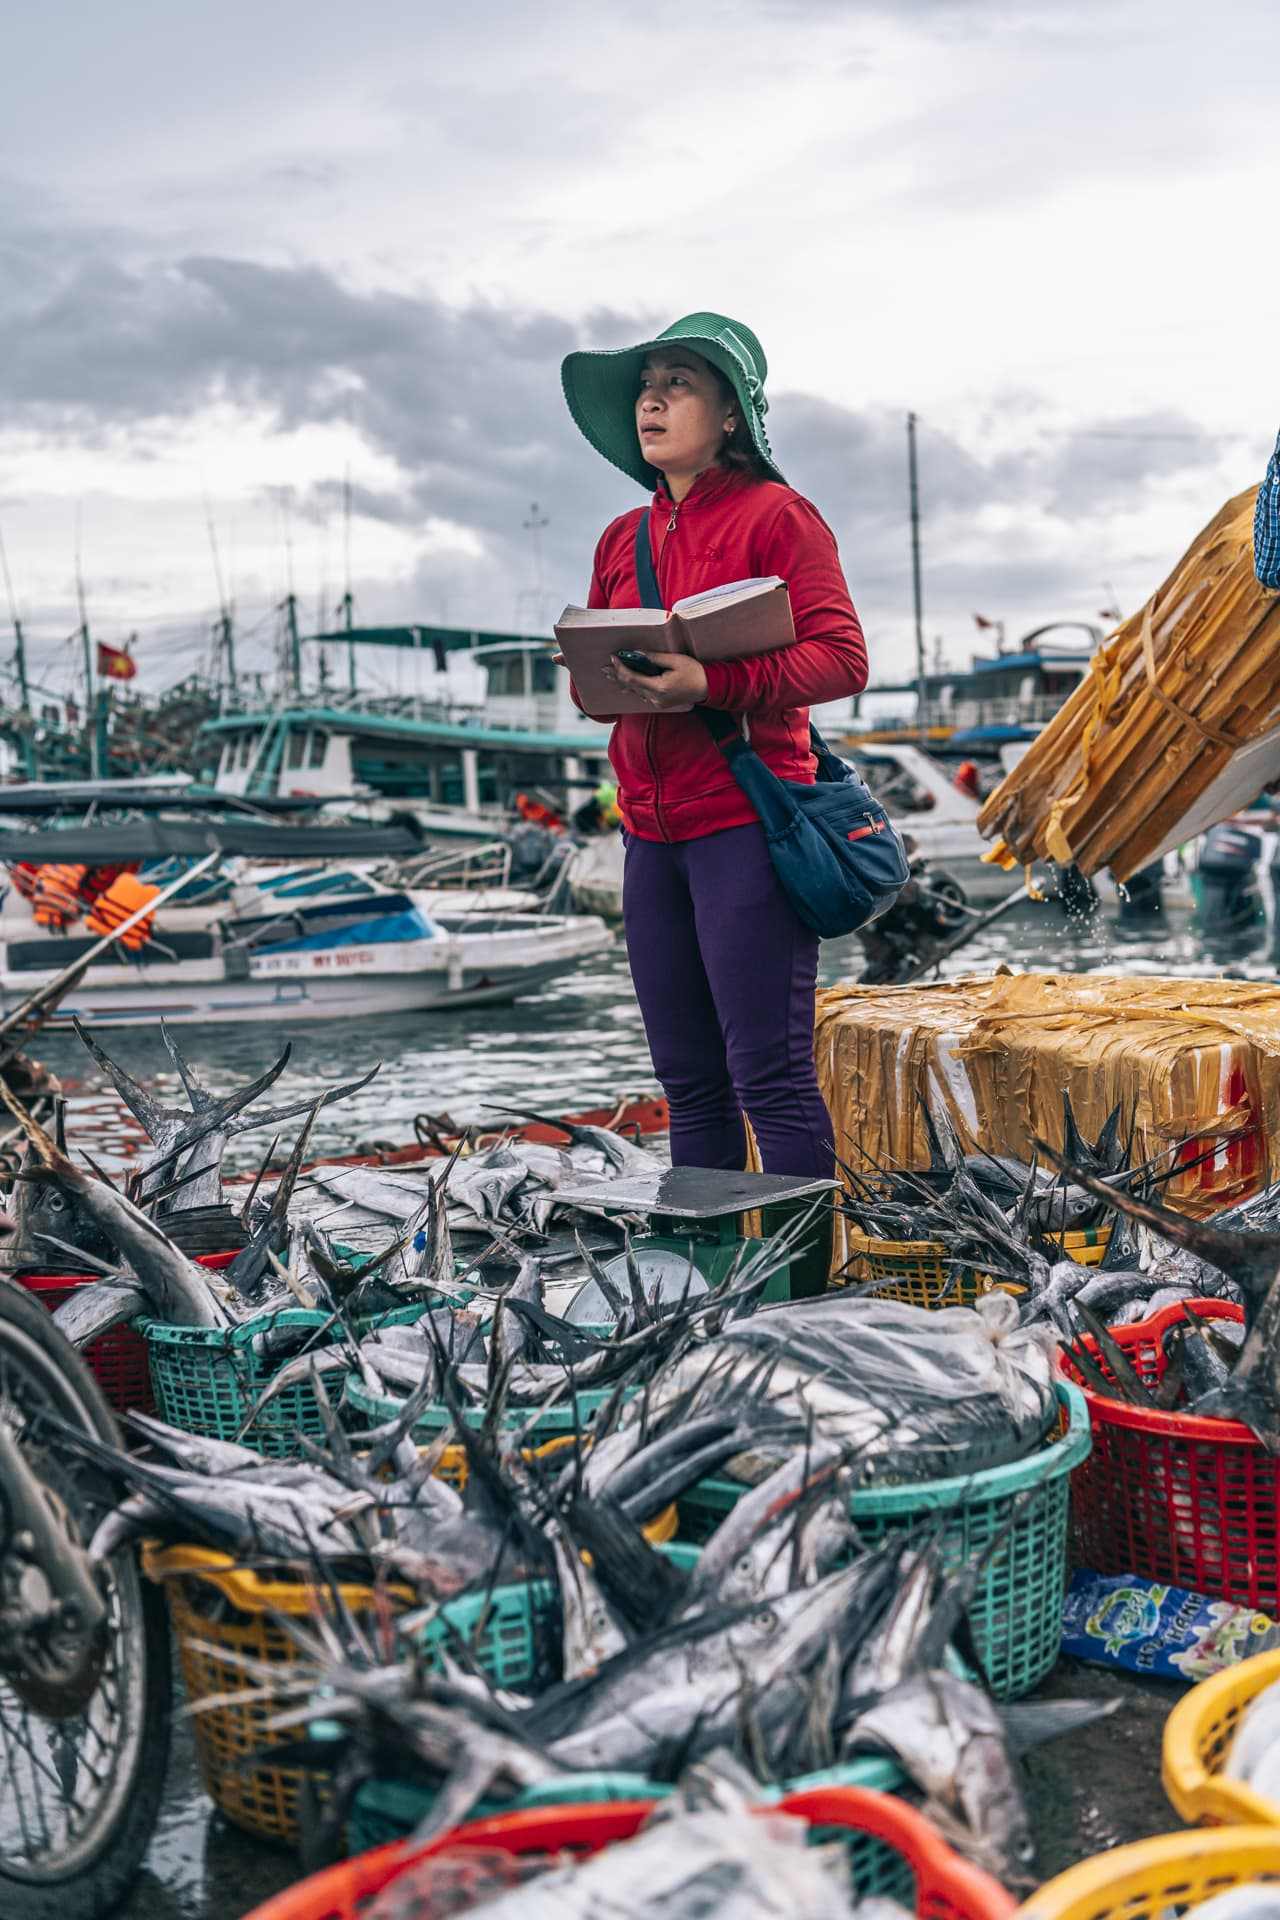 A woman keeping an eye on the day's catch at the Phu Quoc fishing port.